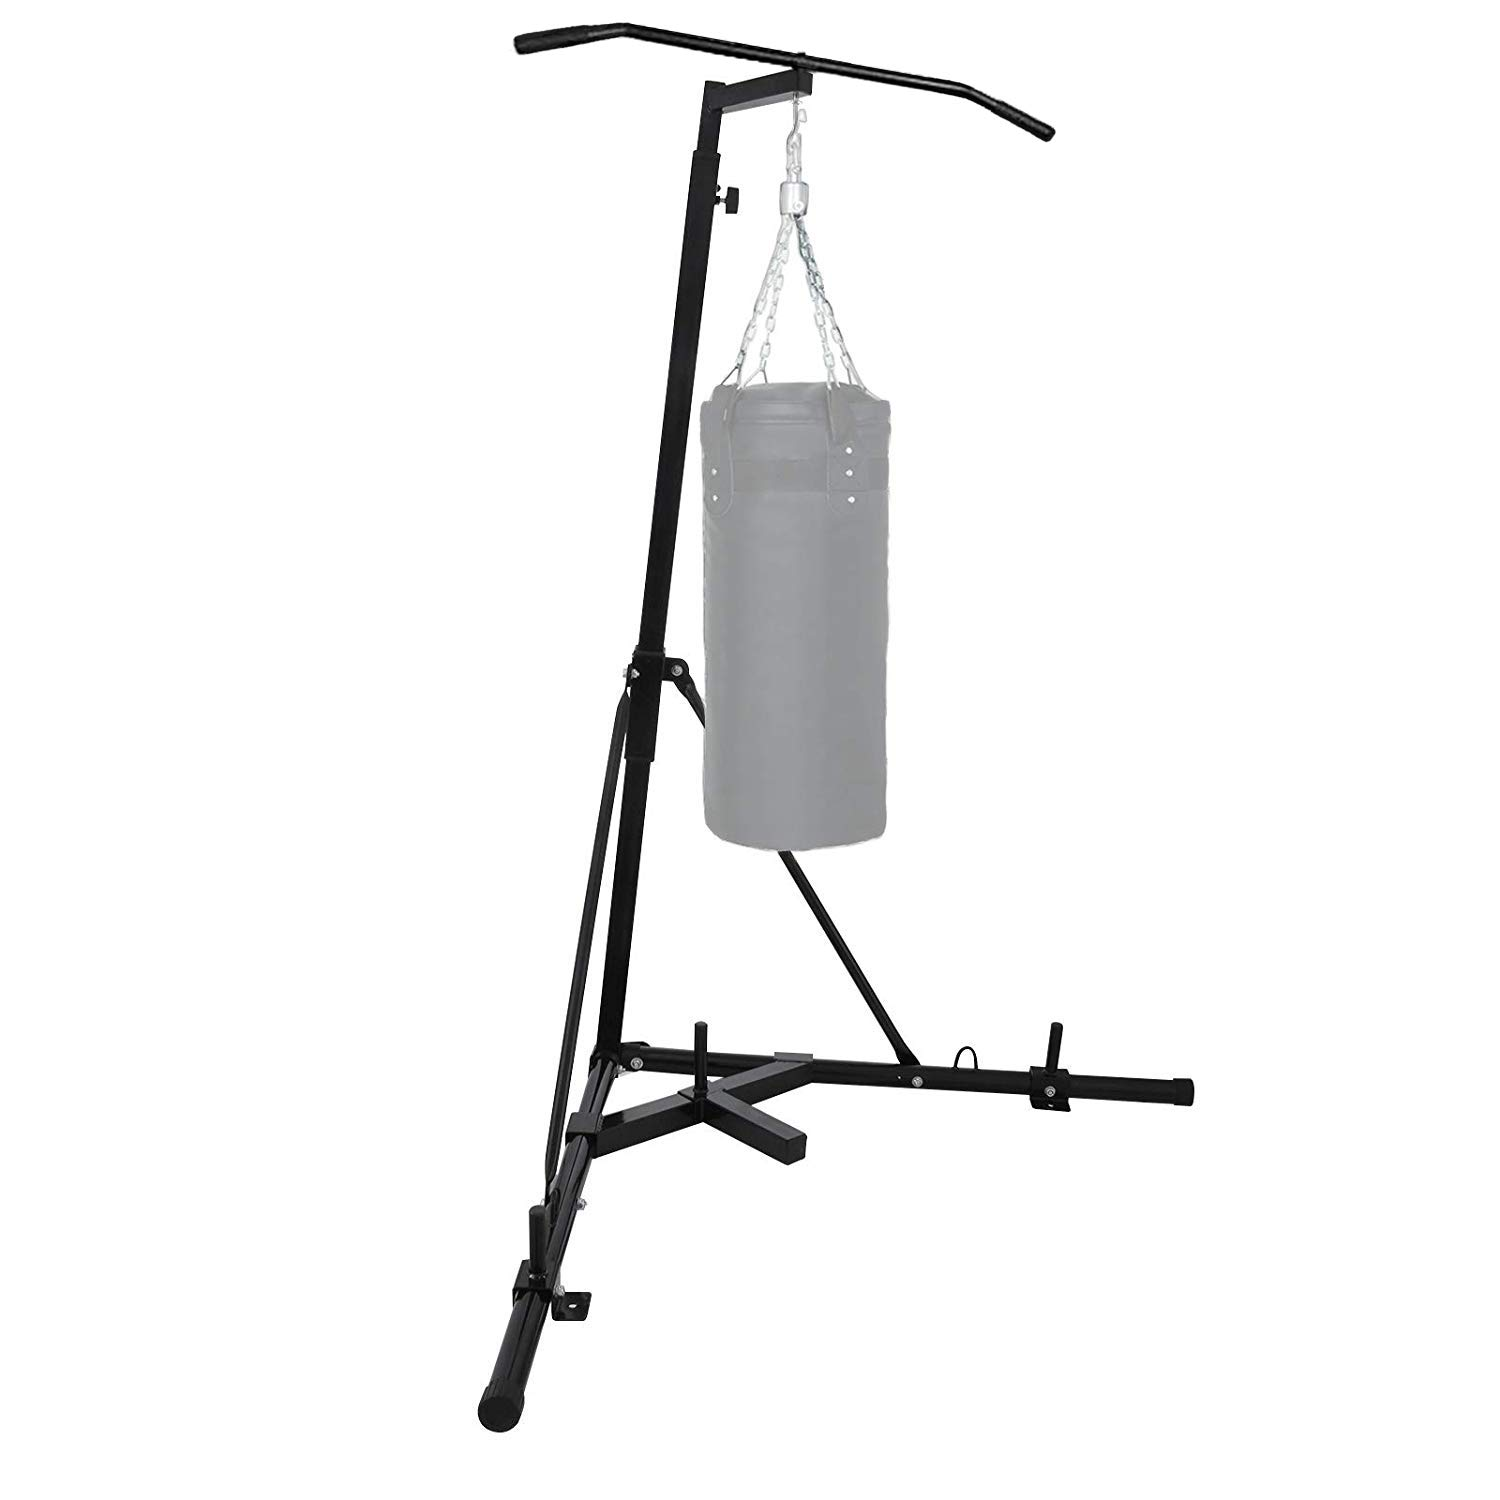 Foldable Boxing Bag Stand Stand Punch Bag Bracket Frame Pull Up Bar Fitness Home